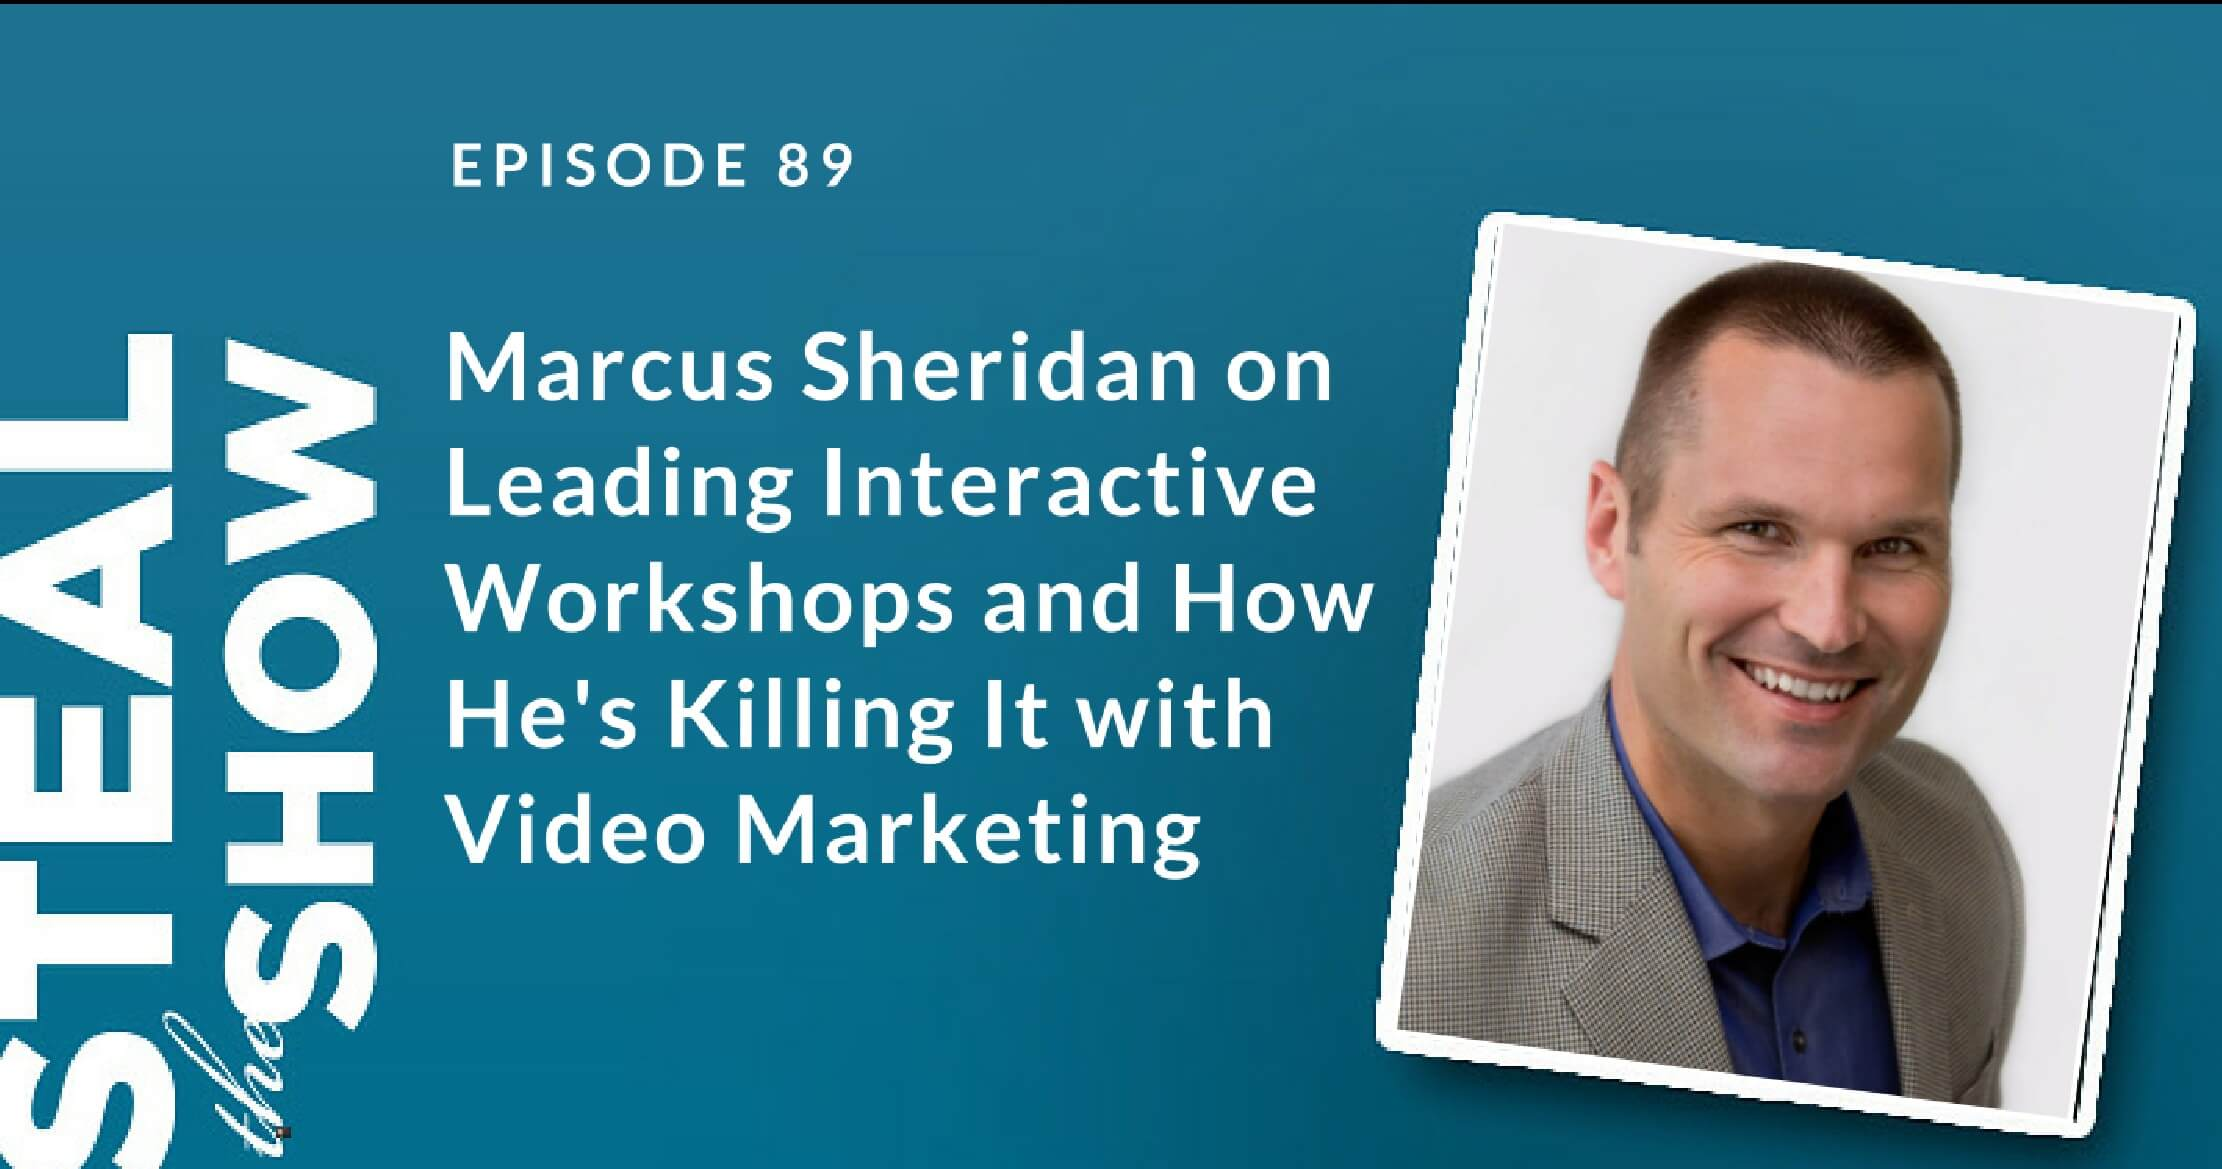 089 Marcus Sheridan on Leading Interactive Workshops and How He's Killing It with Video Marketing